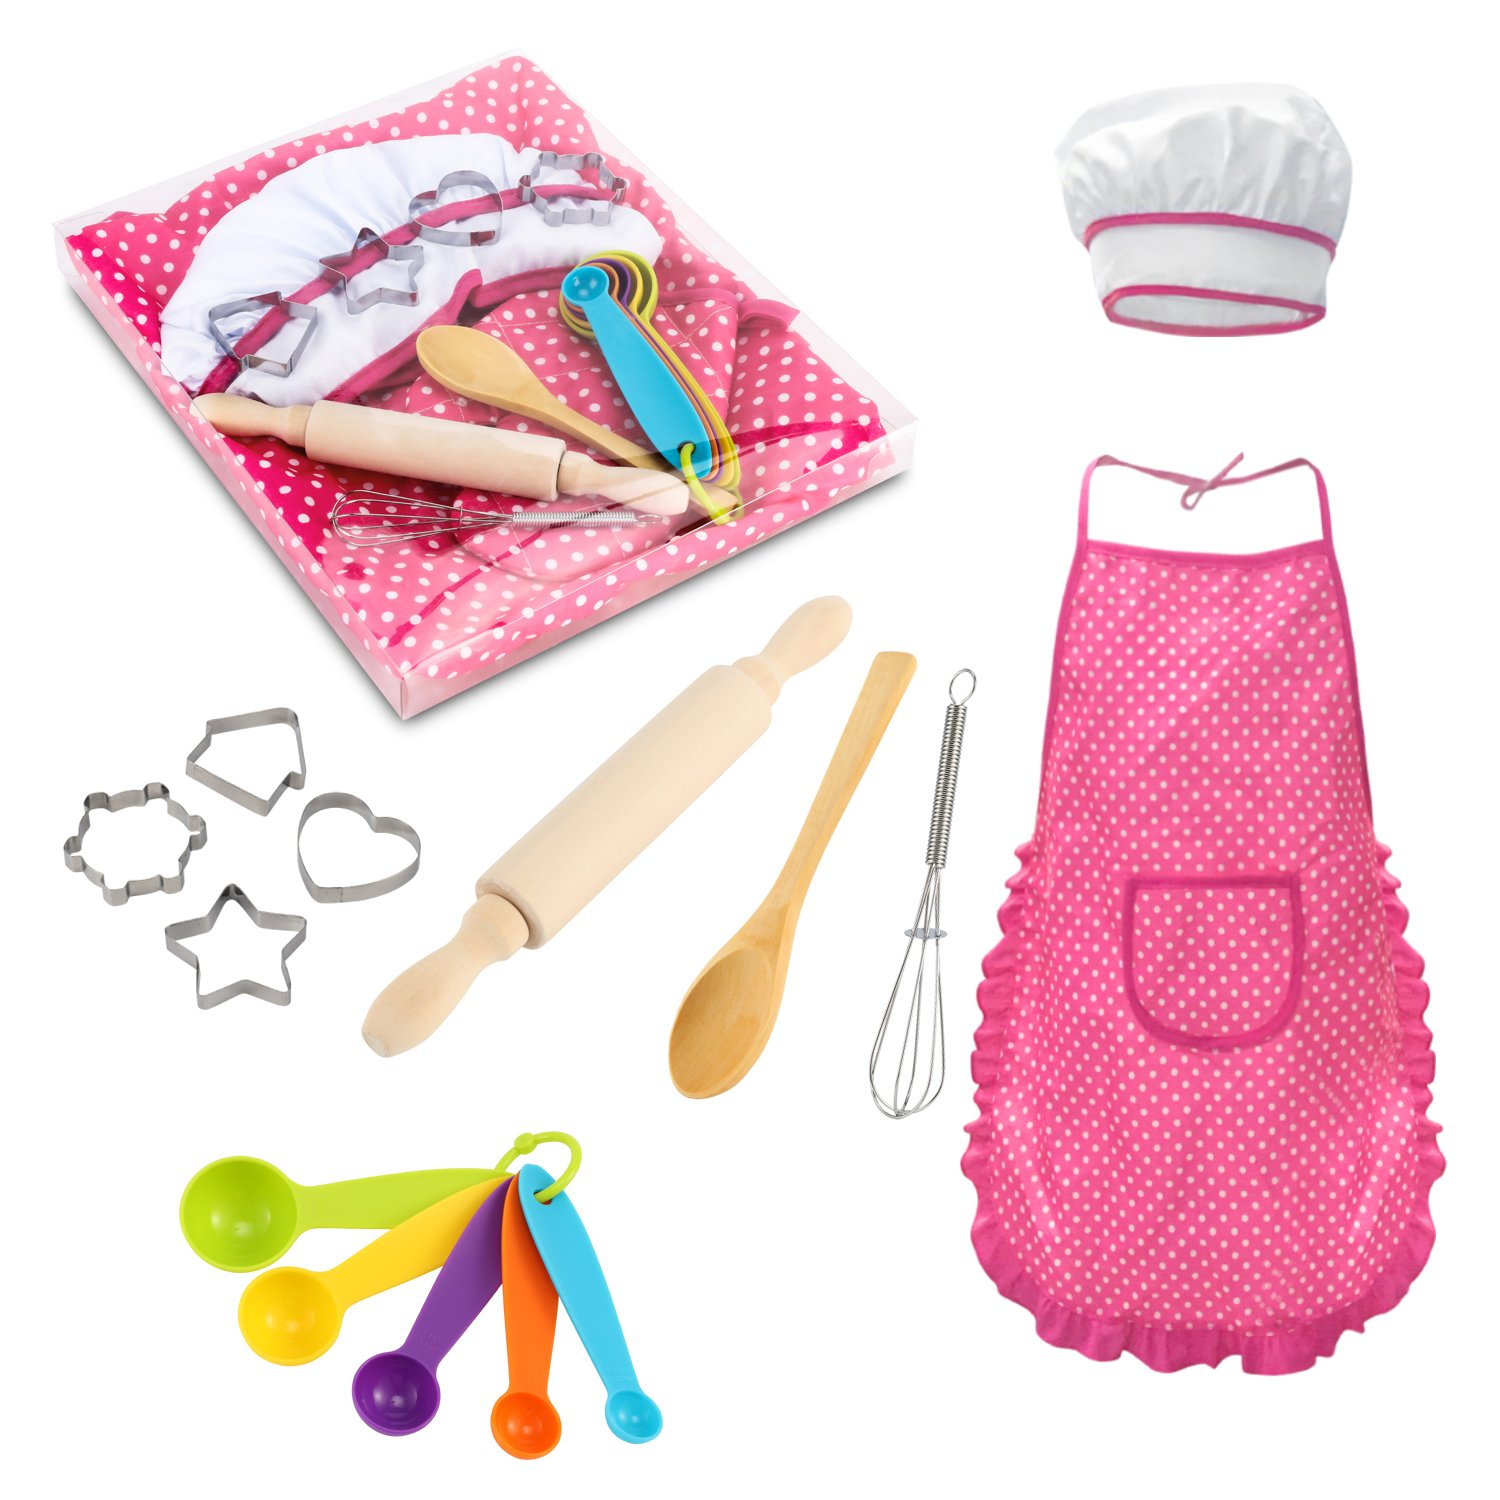 Glonova Chef Set for Kids, 17 Pcs Children Cooking Set for Boys Girls Toddler Role Play Cook Costume with Apron, Chef Hat, Utensils, Cooking Mitt